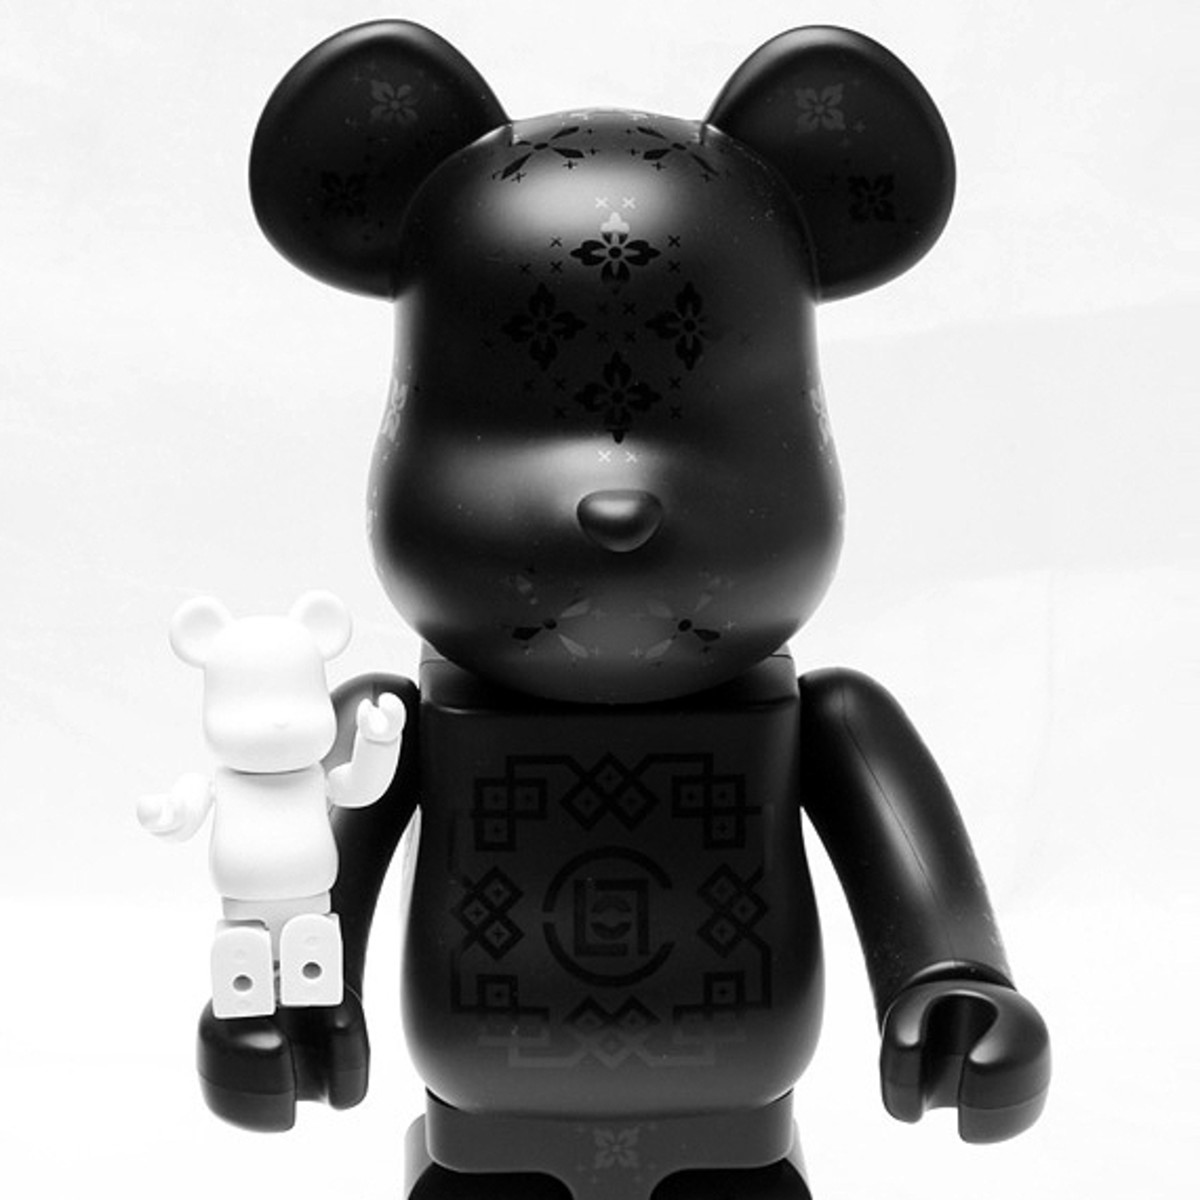 medicom-toy-clot-silk-bearbrick-00-a